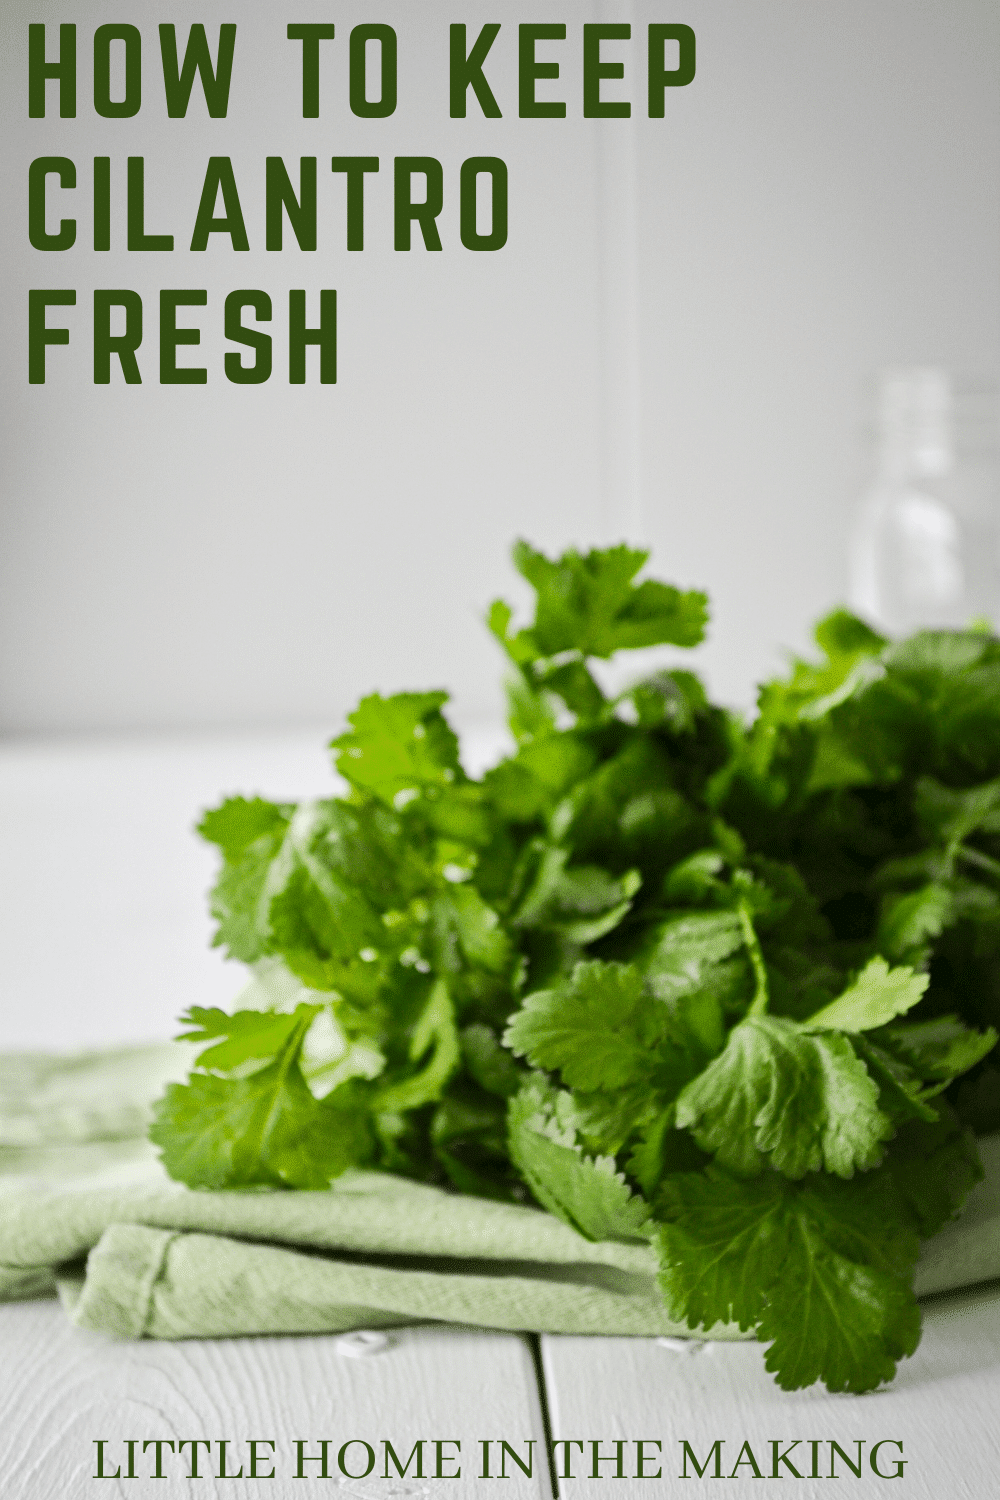 A bunch of cilantro on a white table. The text reads: How to Keep Cilantro Fresh